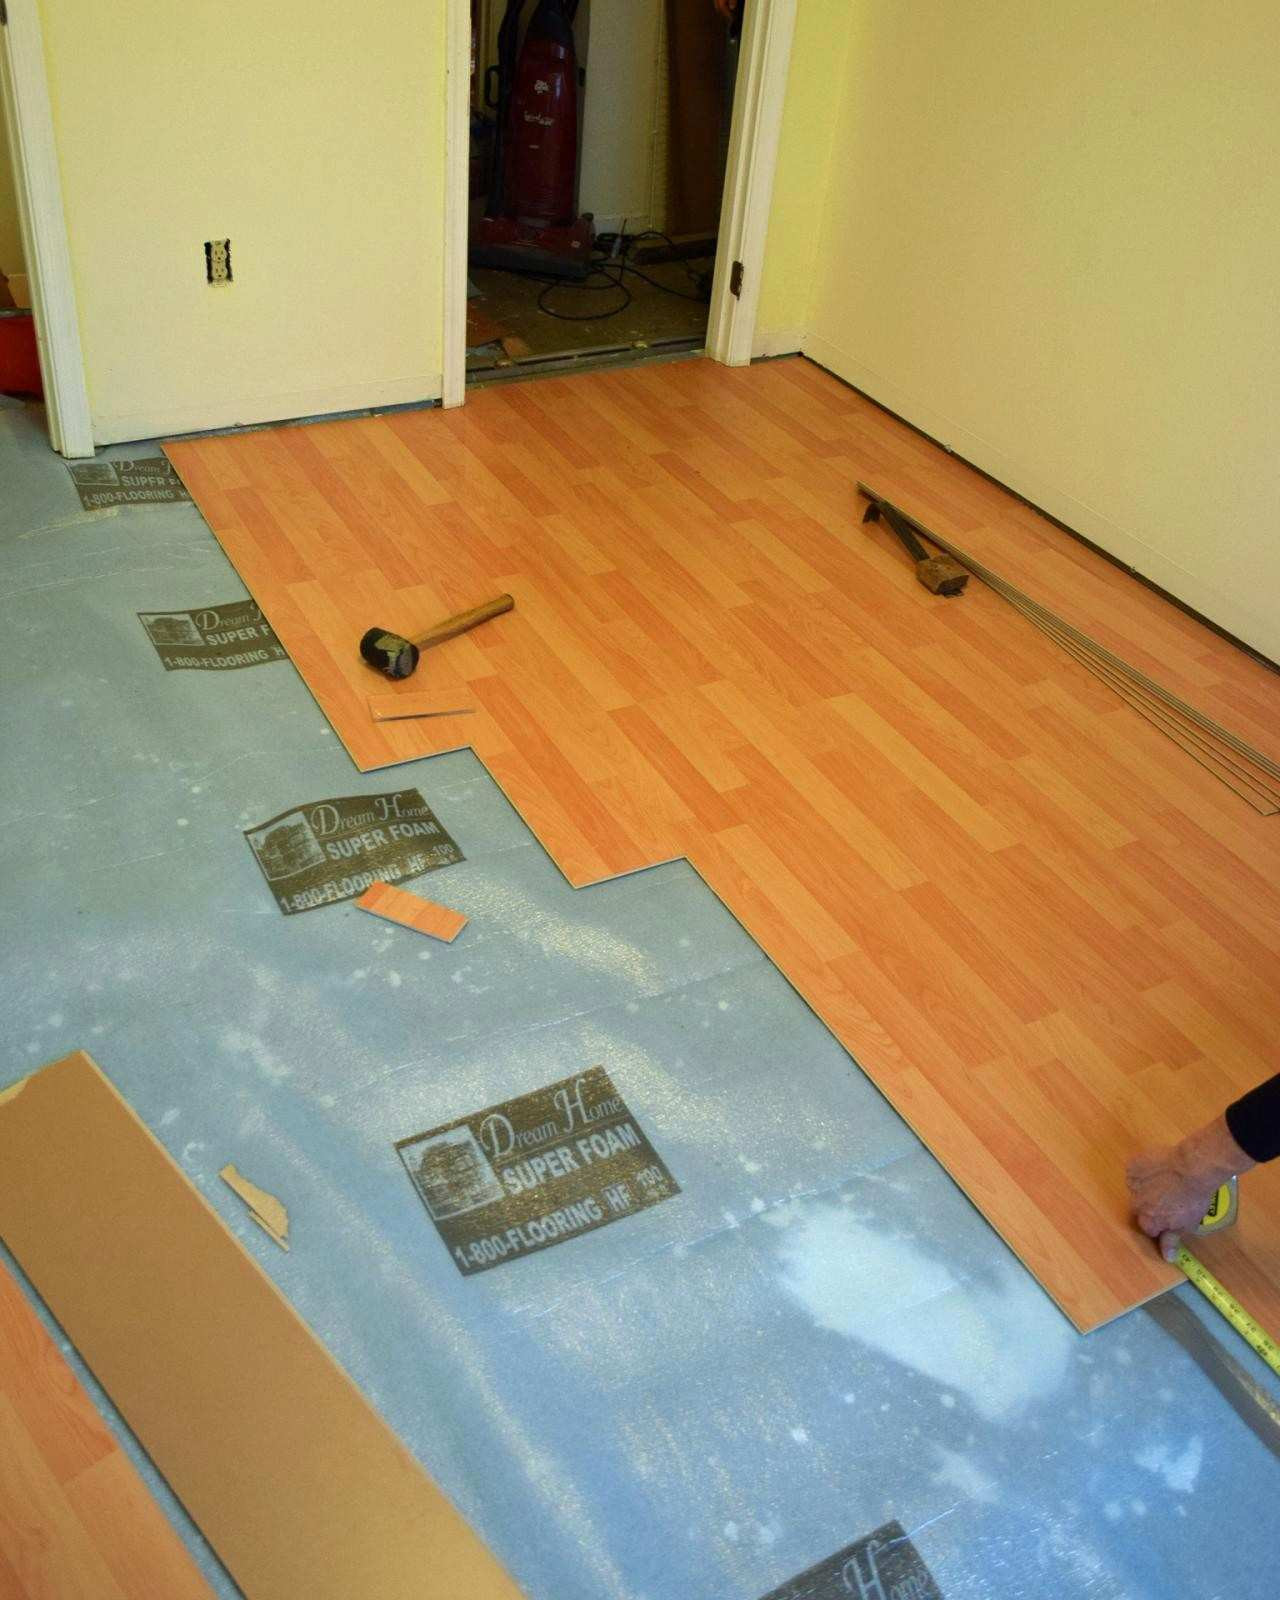 cost of installing hardwood floors home depot of 30 awesome cost to install laminate flooring home depot regarding cost to install laminate flooring home depot beautiful 50 new hardwood flooring contractors graphics 50 s